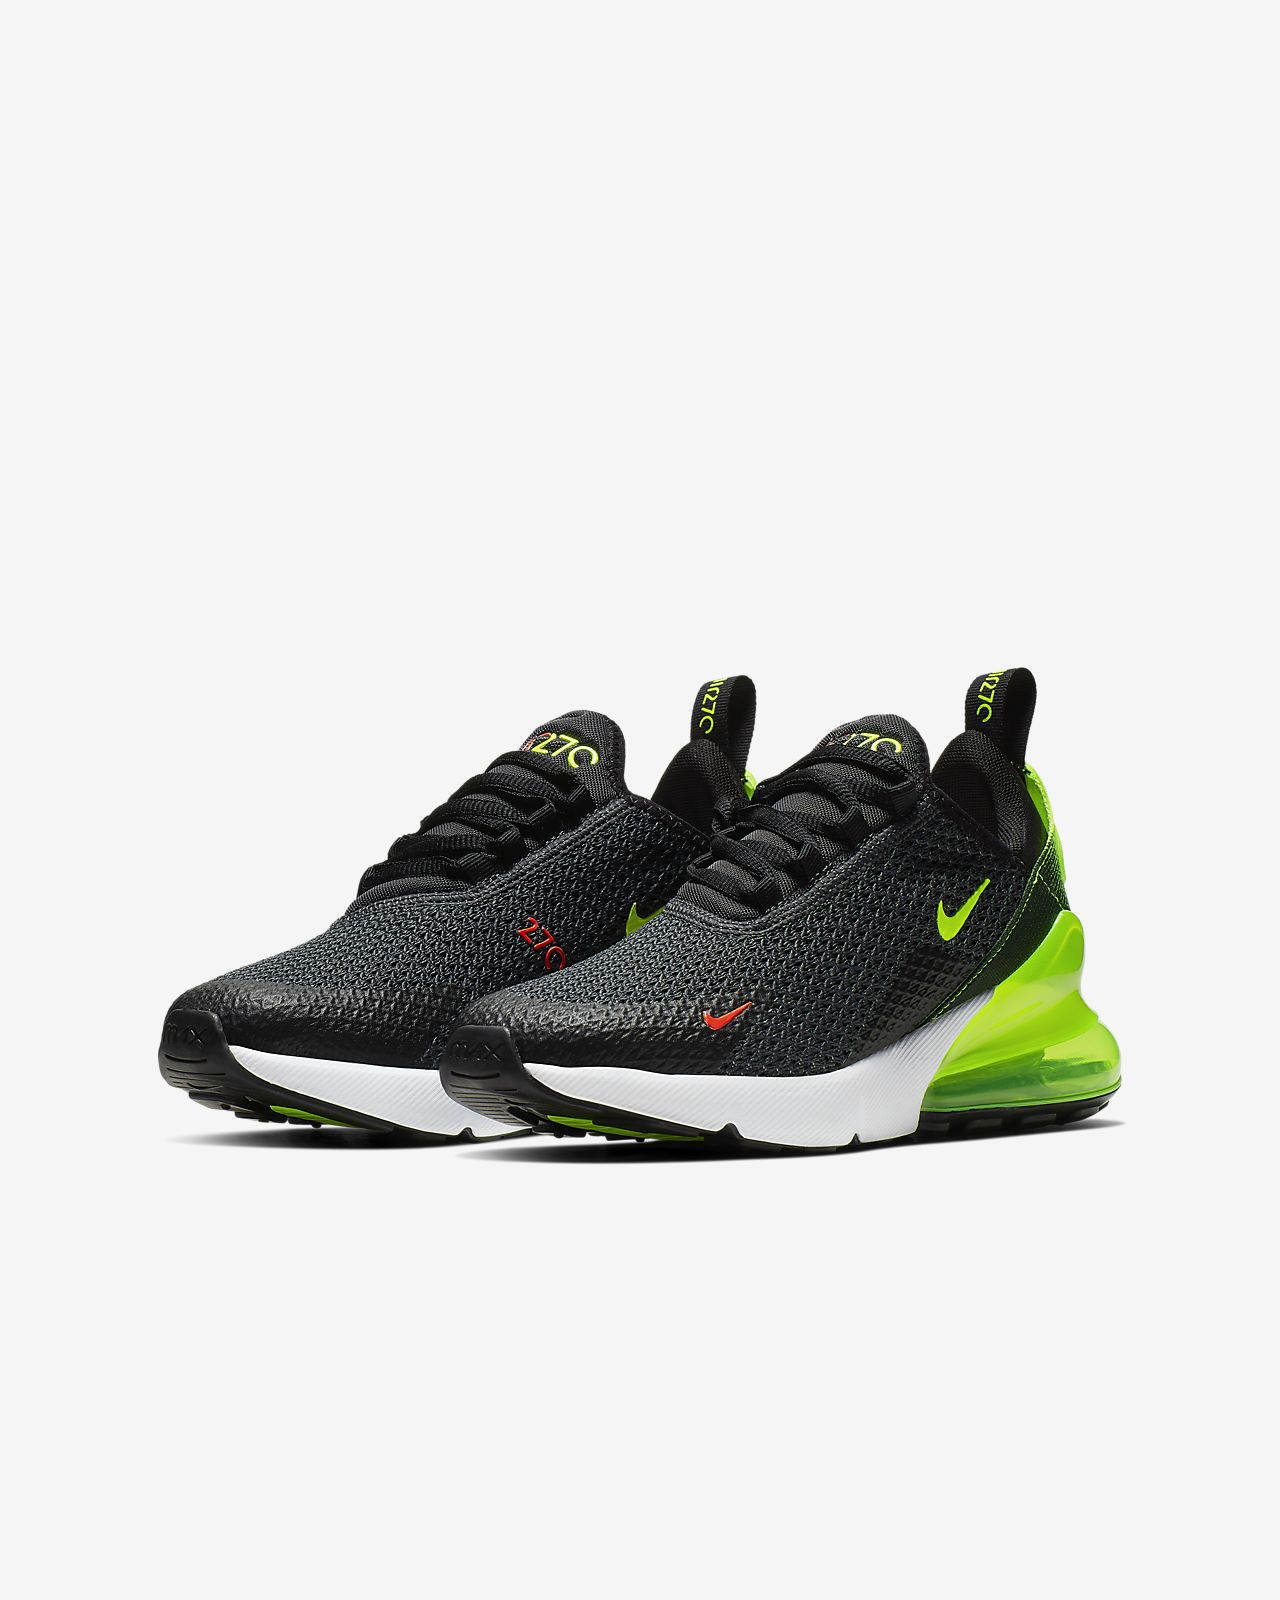 check out c3aac 61f25 ... Sko Nike Air Max 270 för ungdom